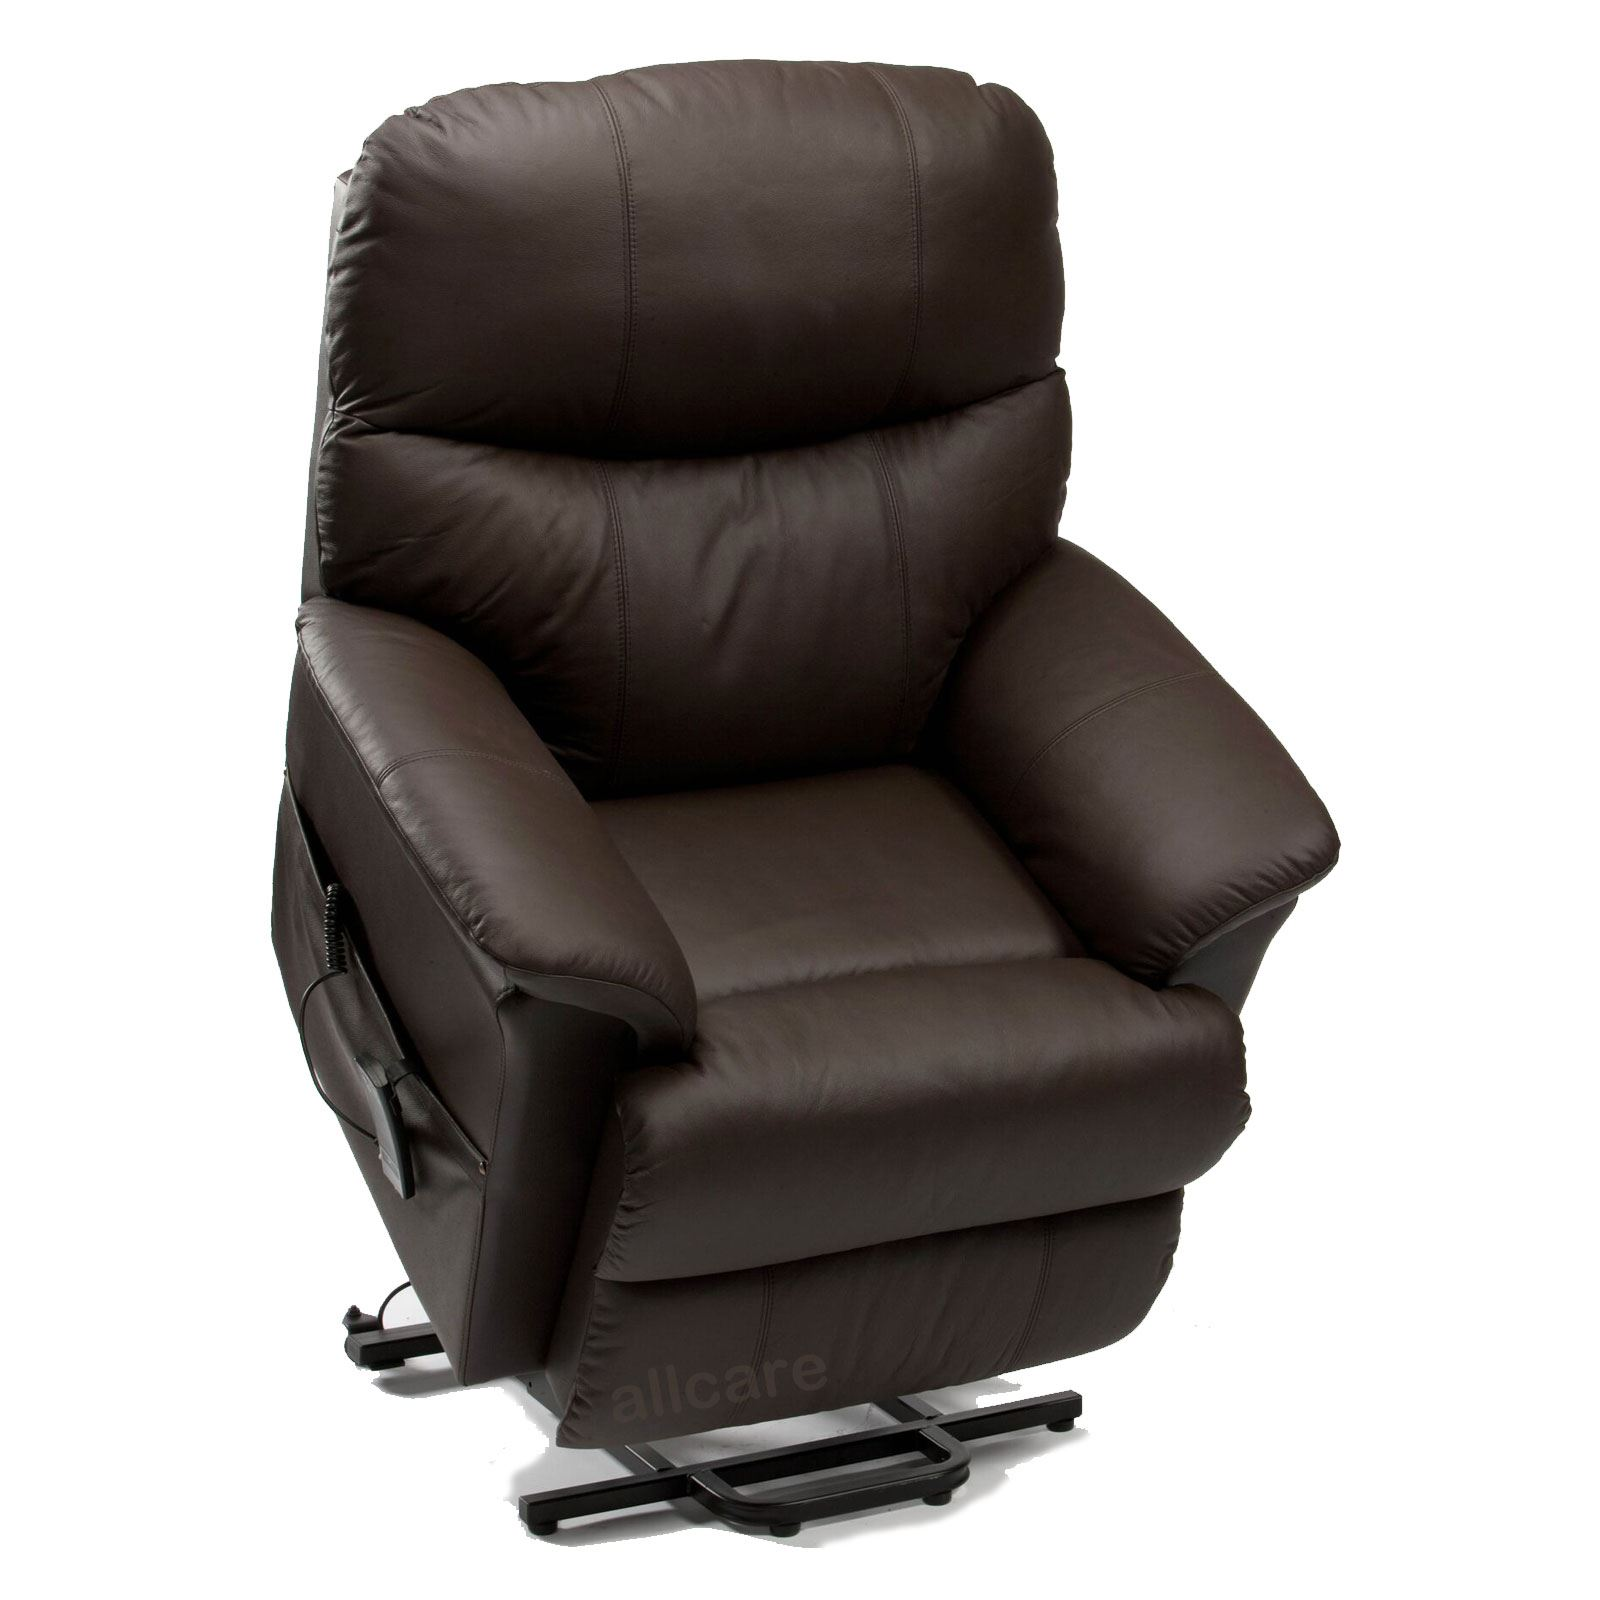 Restwell Lars Leather Electric Riser Recliner Chair Dual